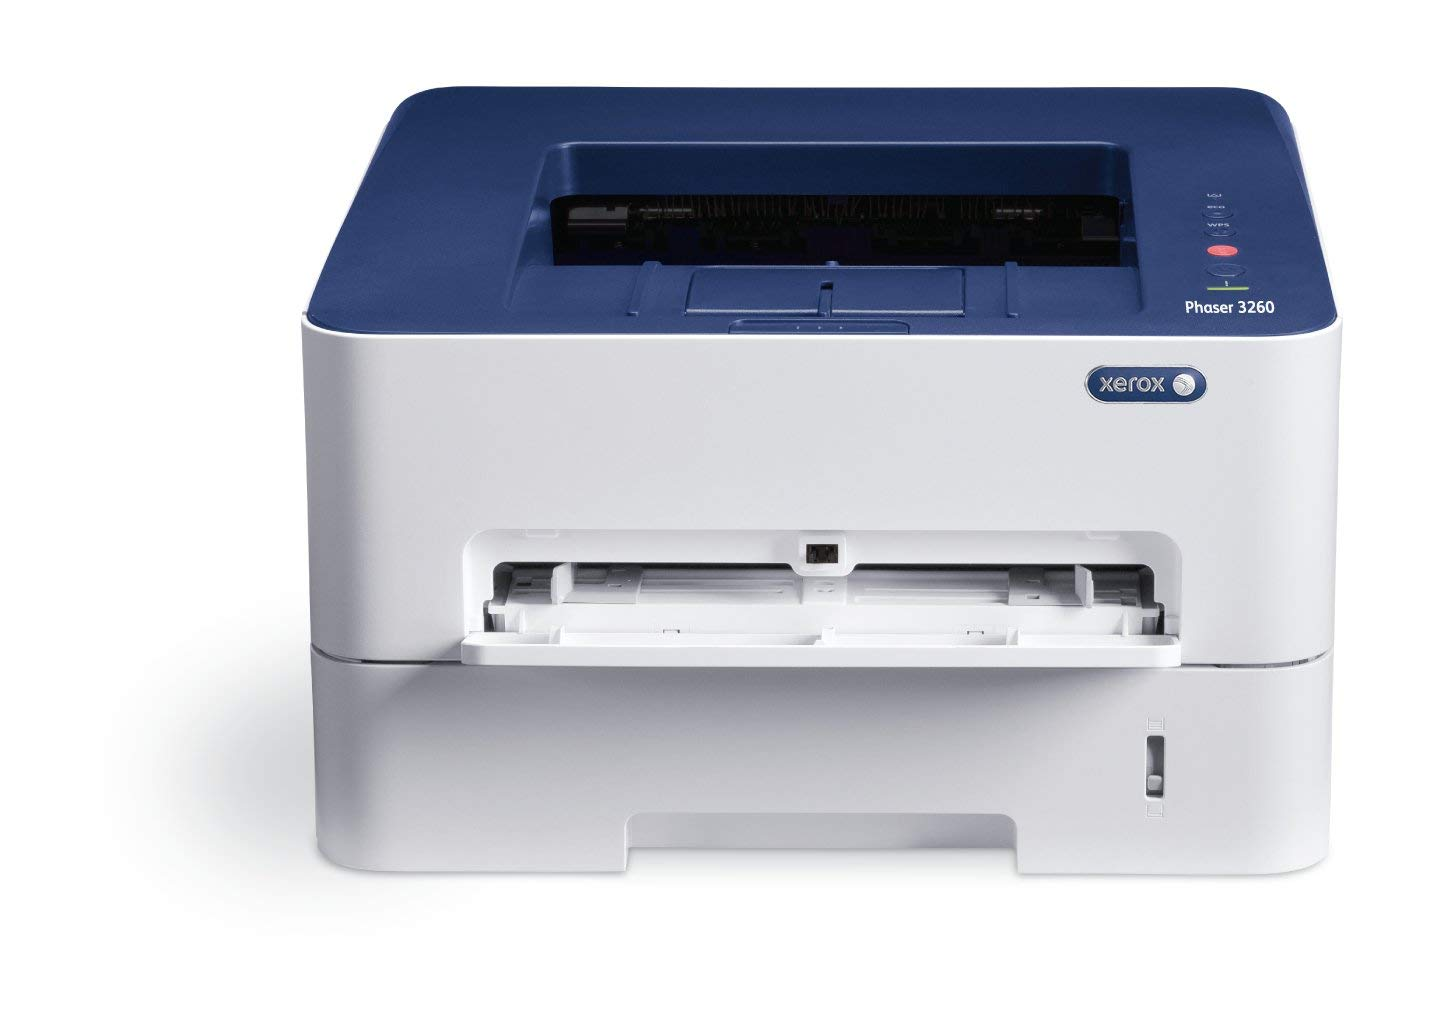 Xerox Phaser 3260 Monochrome Laser Printer With Built-In Wi-Fi Connectivity (Renewed) by Xerox (Image #2)